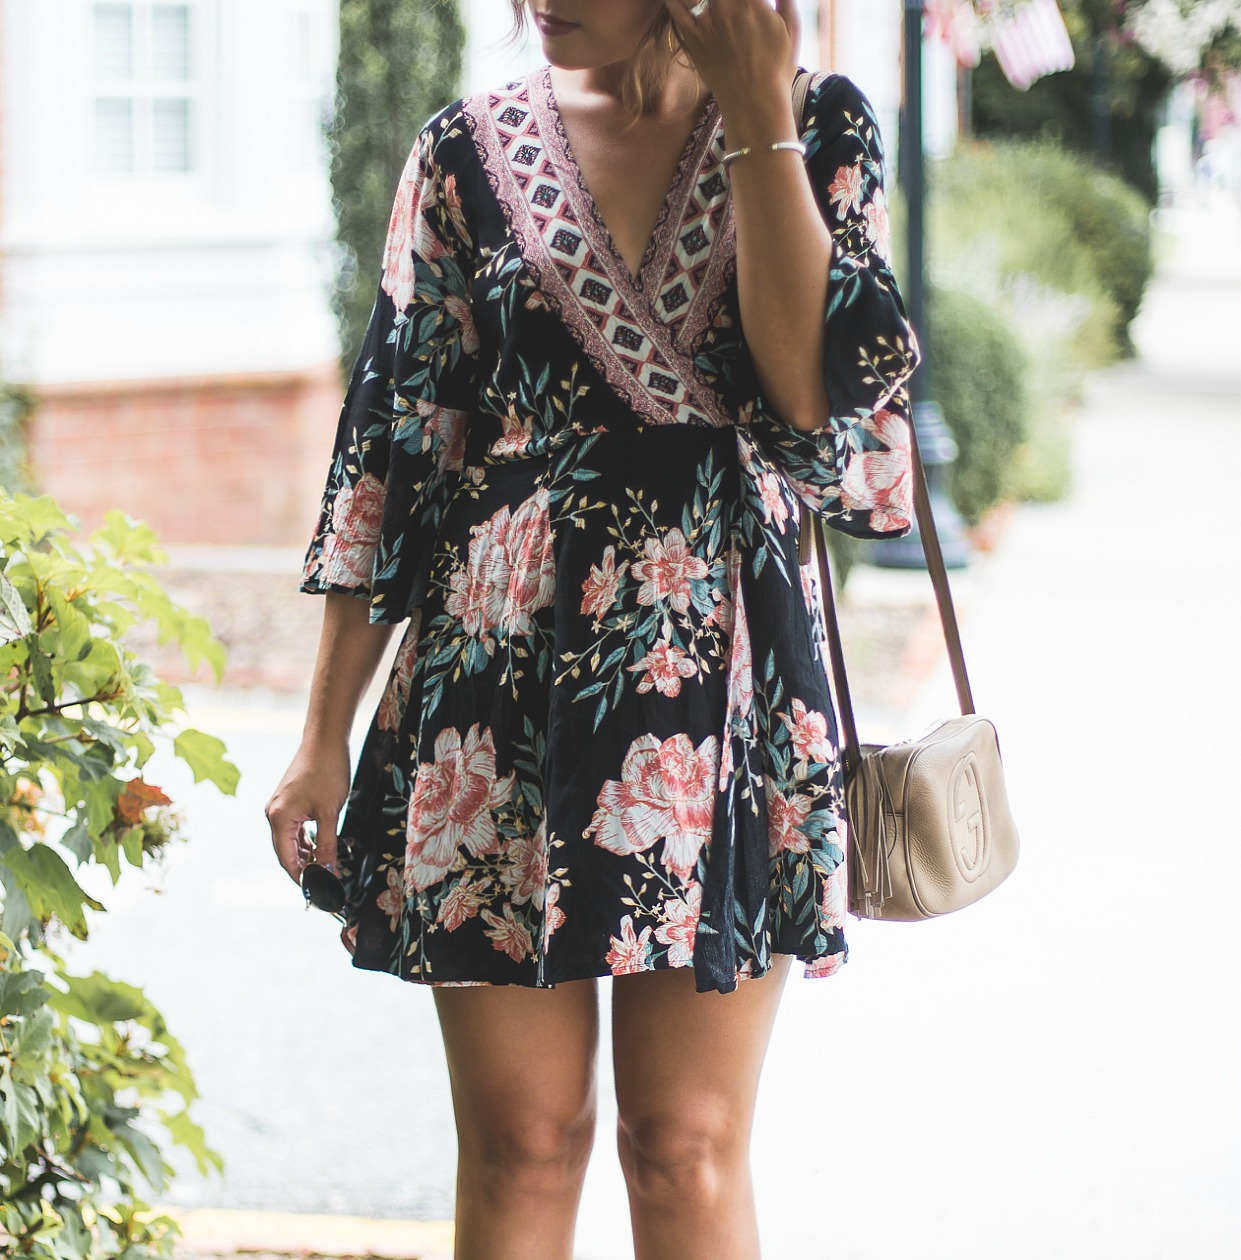 Billabong Divine Floral Dress, gucci soho disco, boho dress, floral dress